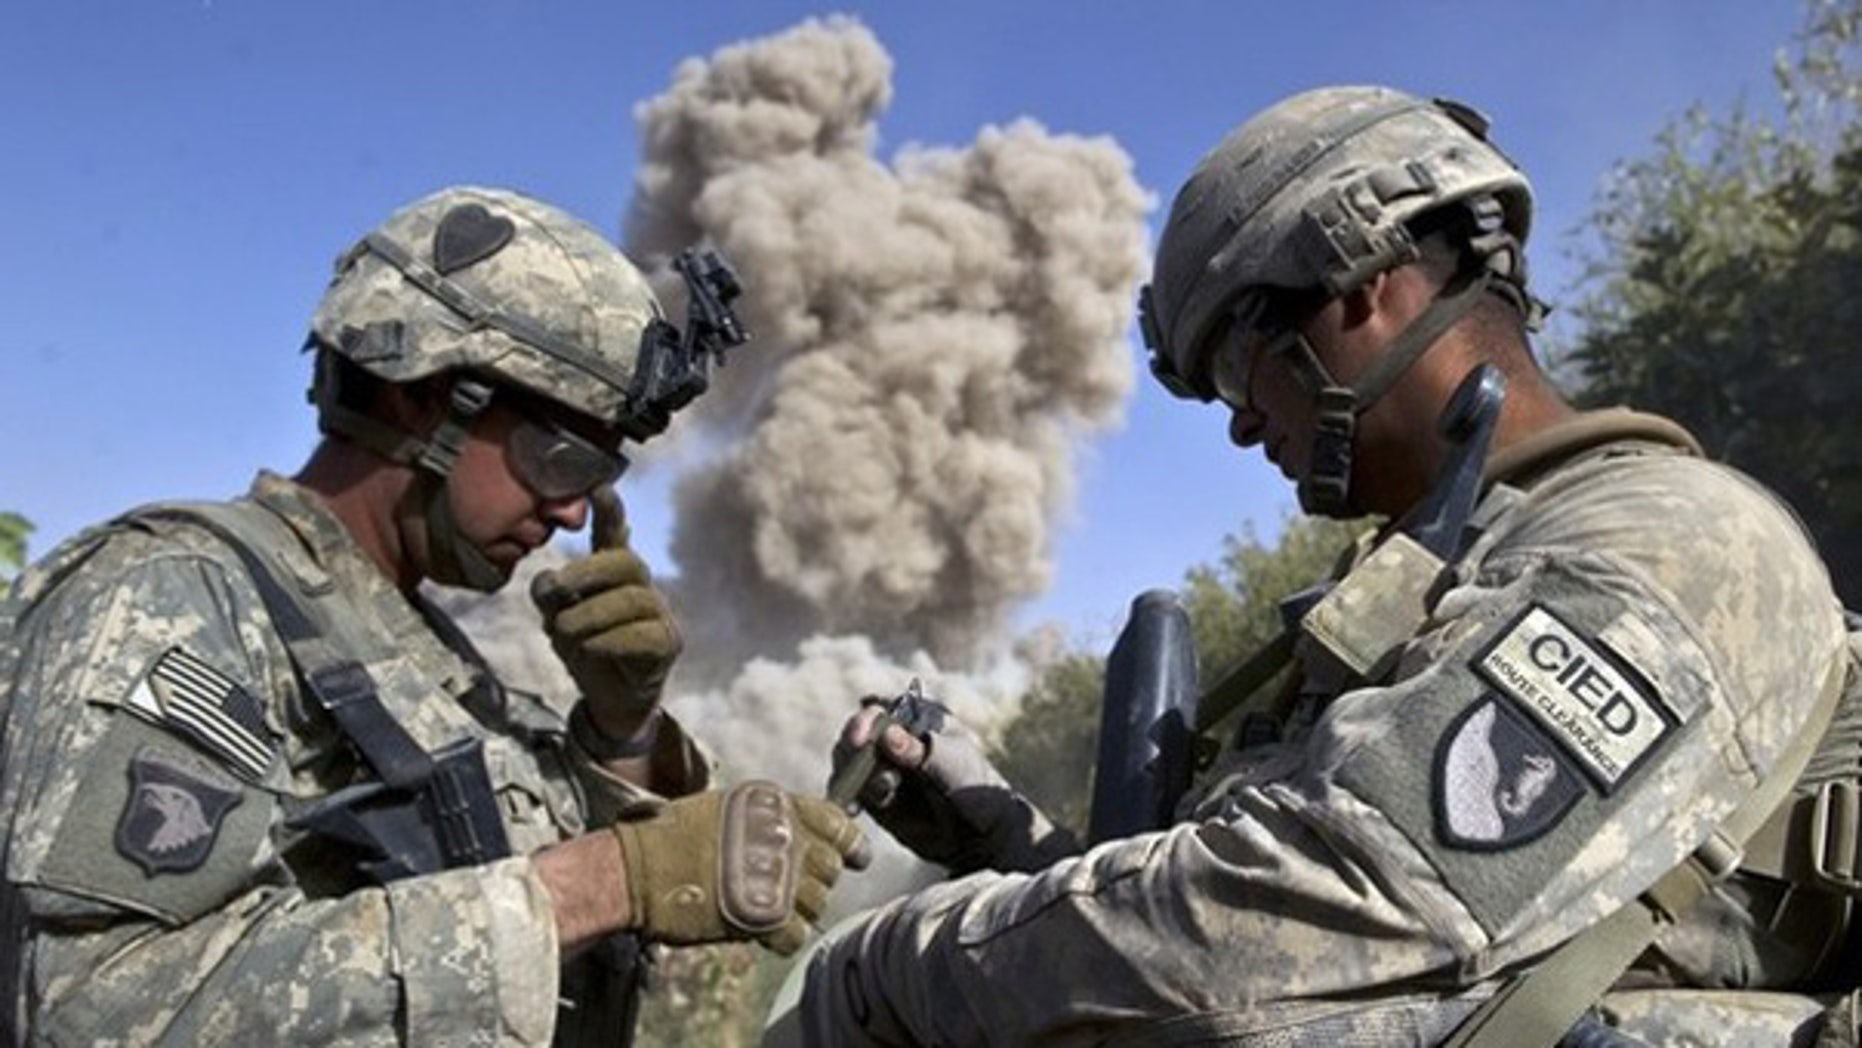 Oct. 25: U.S. soldiers blow up a building they believe the Taliban may use in Kandahar, Afghanistan.